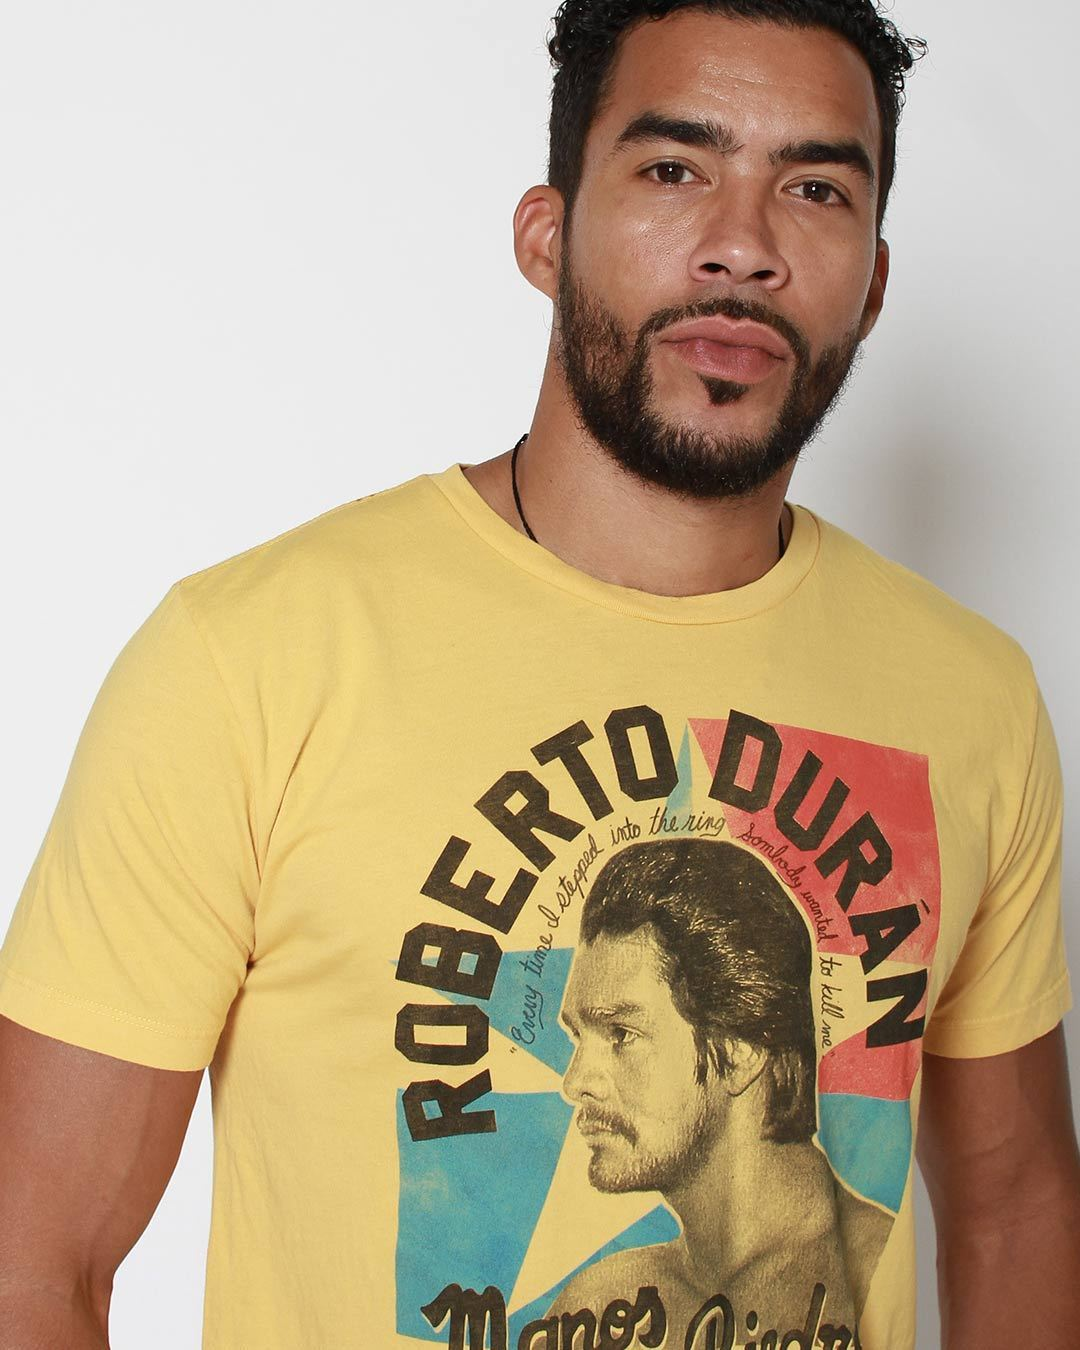 Roberto Duran 'Wanted to Kill me' tee - Roots of Inc dba Roots of Fight